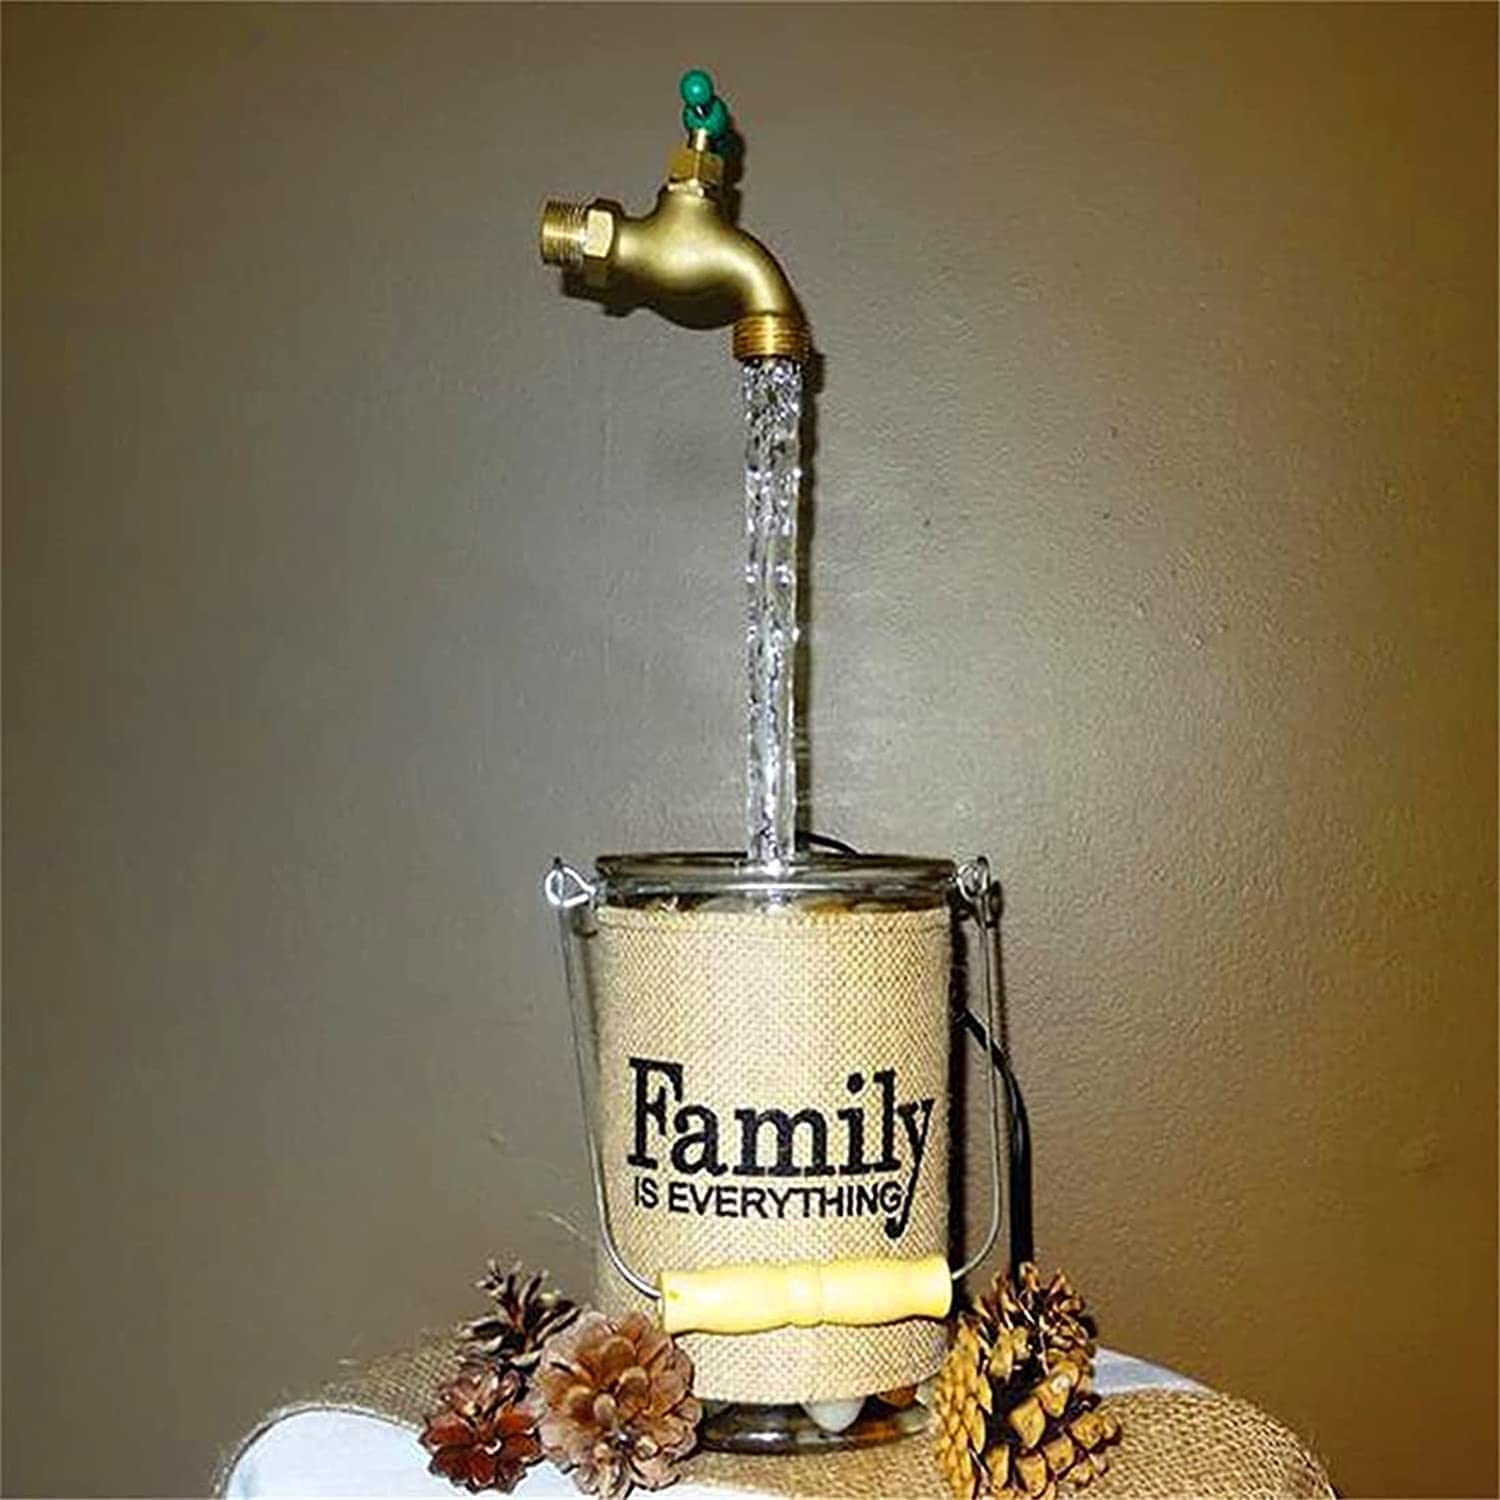 Invisible Flowing Price reduction Spout Brand Cheap Sale Venue Watering Fountain F Can Magic